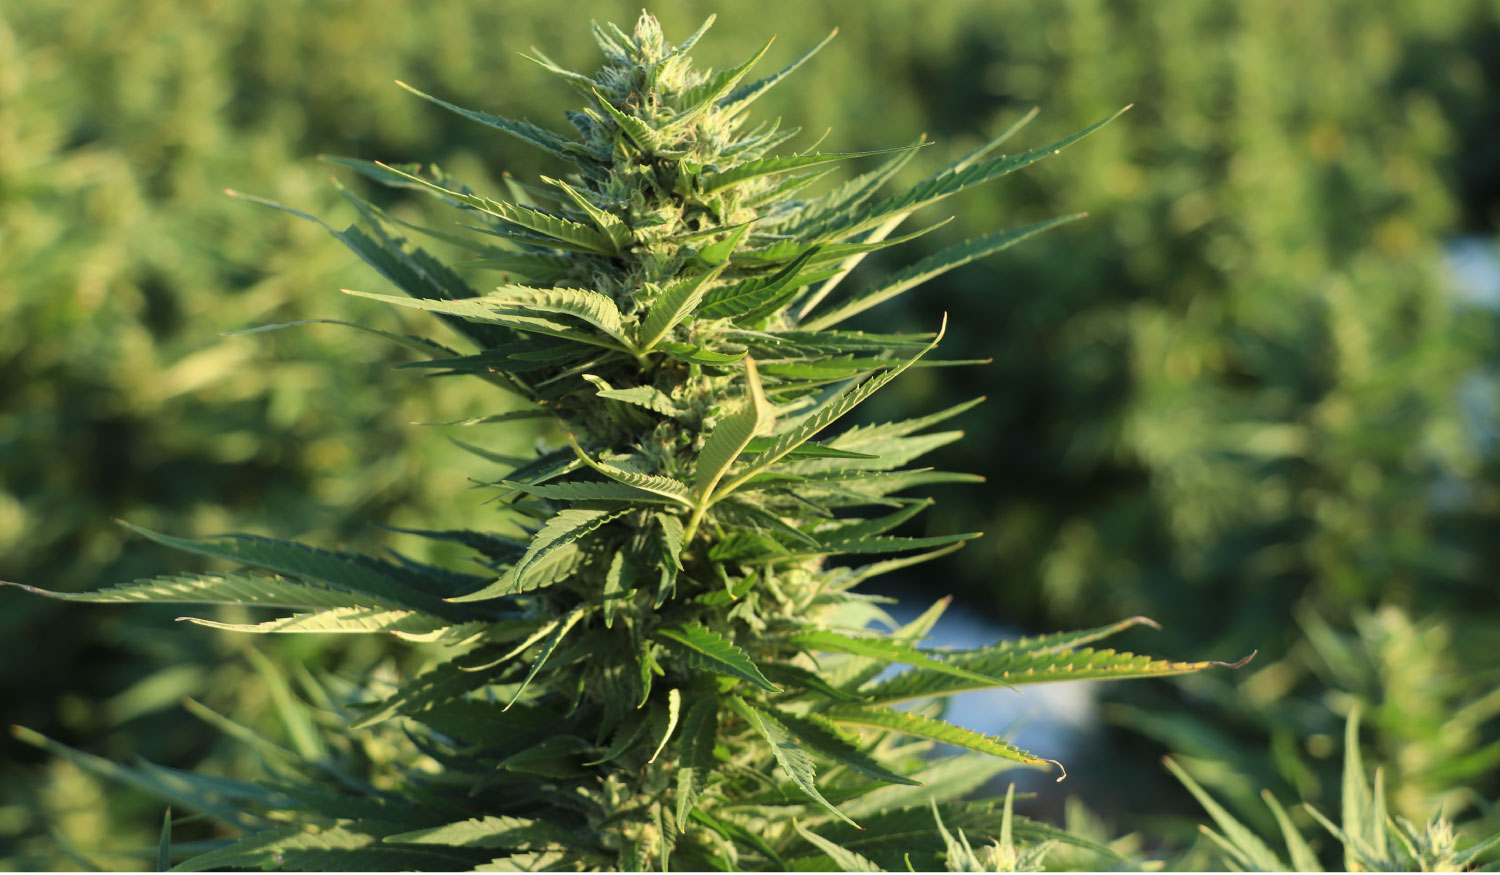 Photo of an industrial hemp plant ready to harvest for CBD oil production